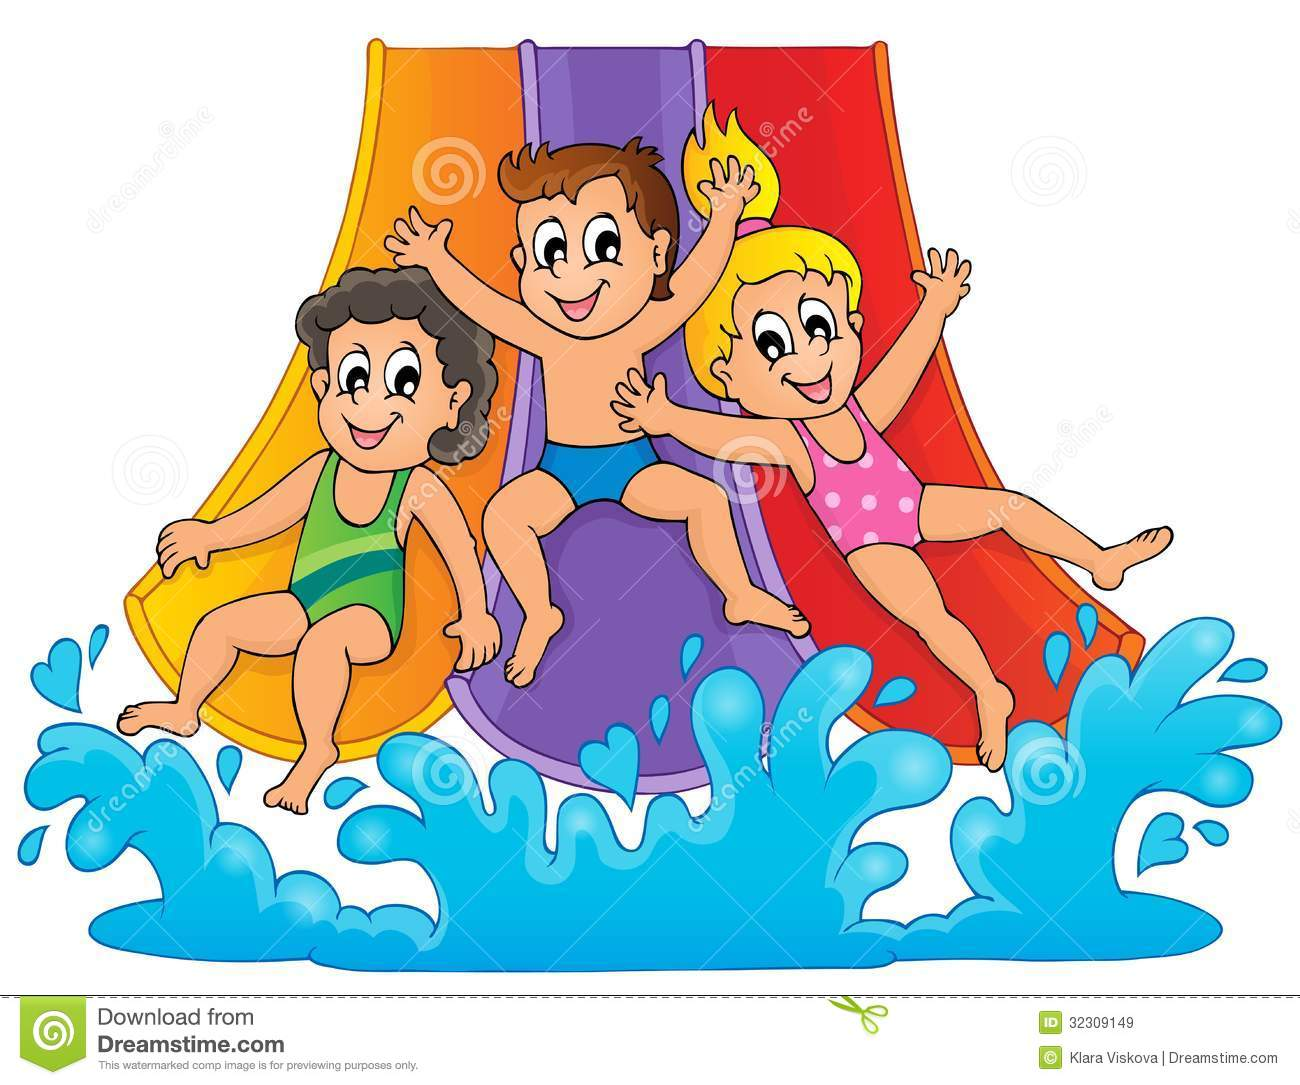 Water Slide Clipart-hdclipart - Water Slide Clipart